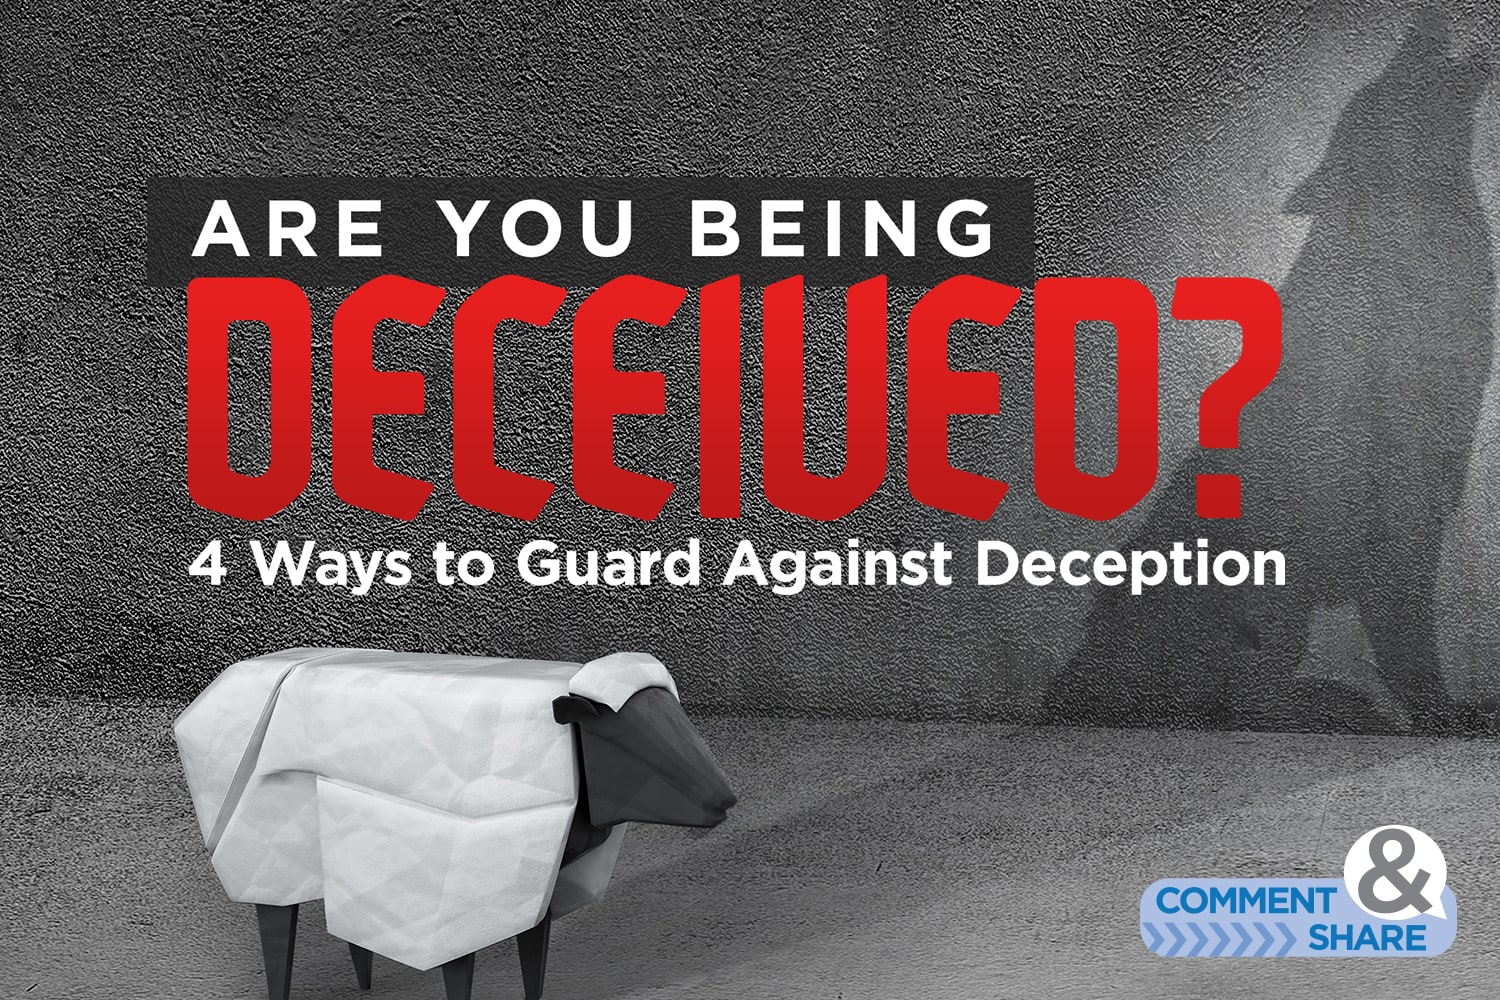 Are You Being Deceived?